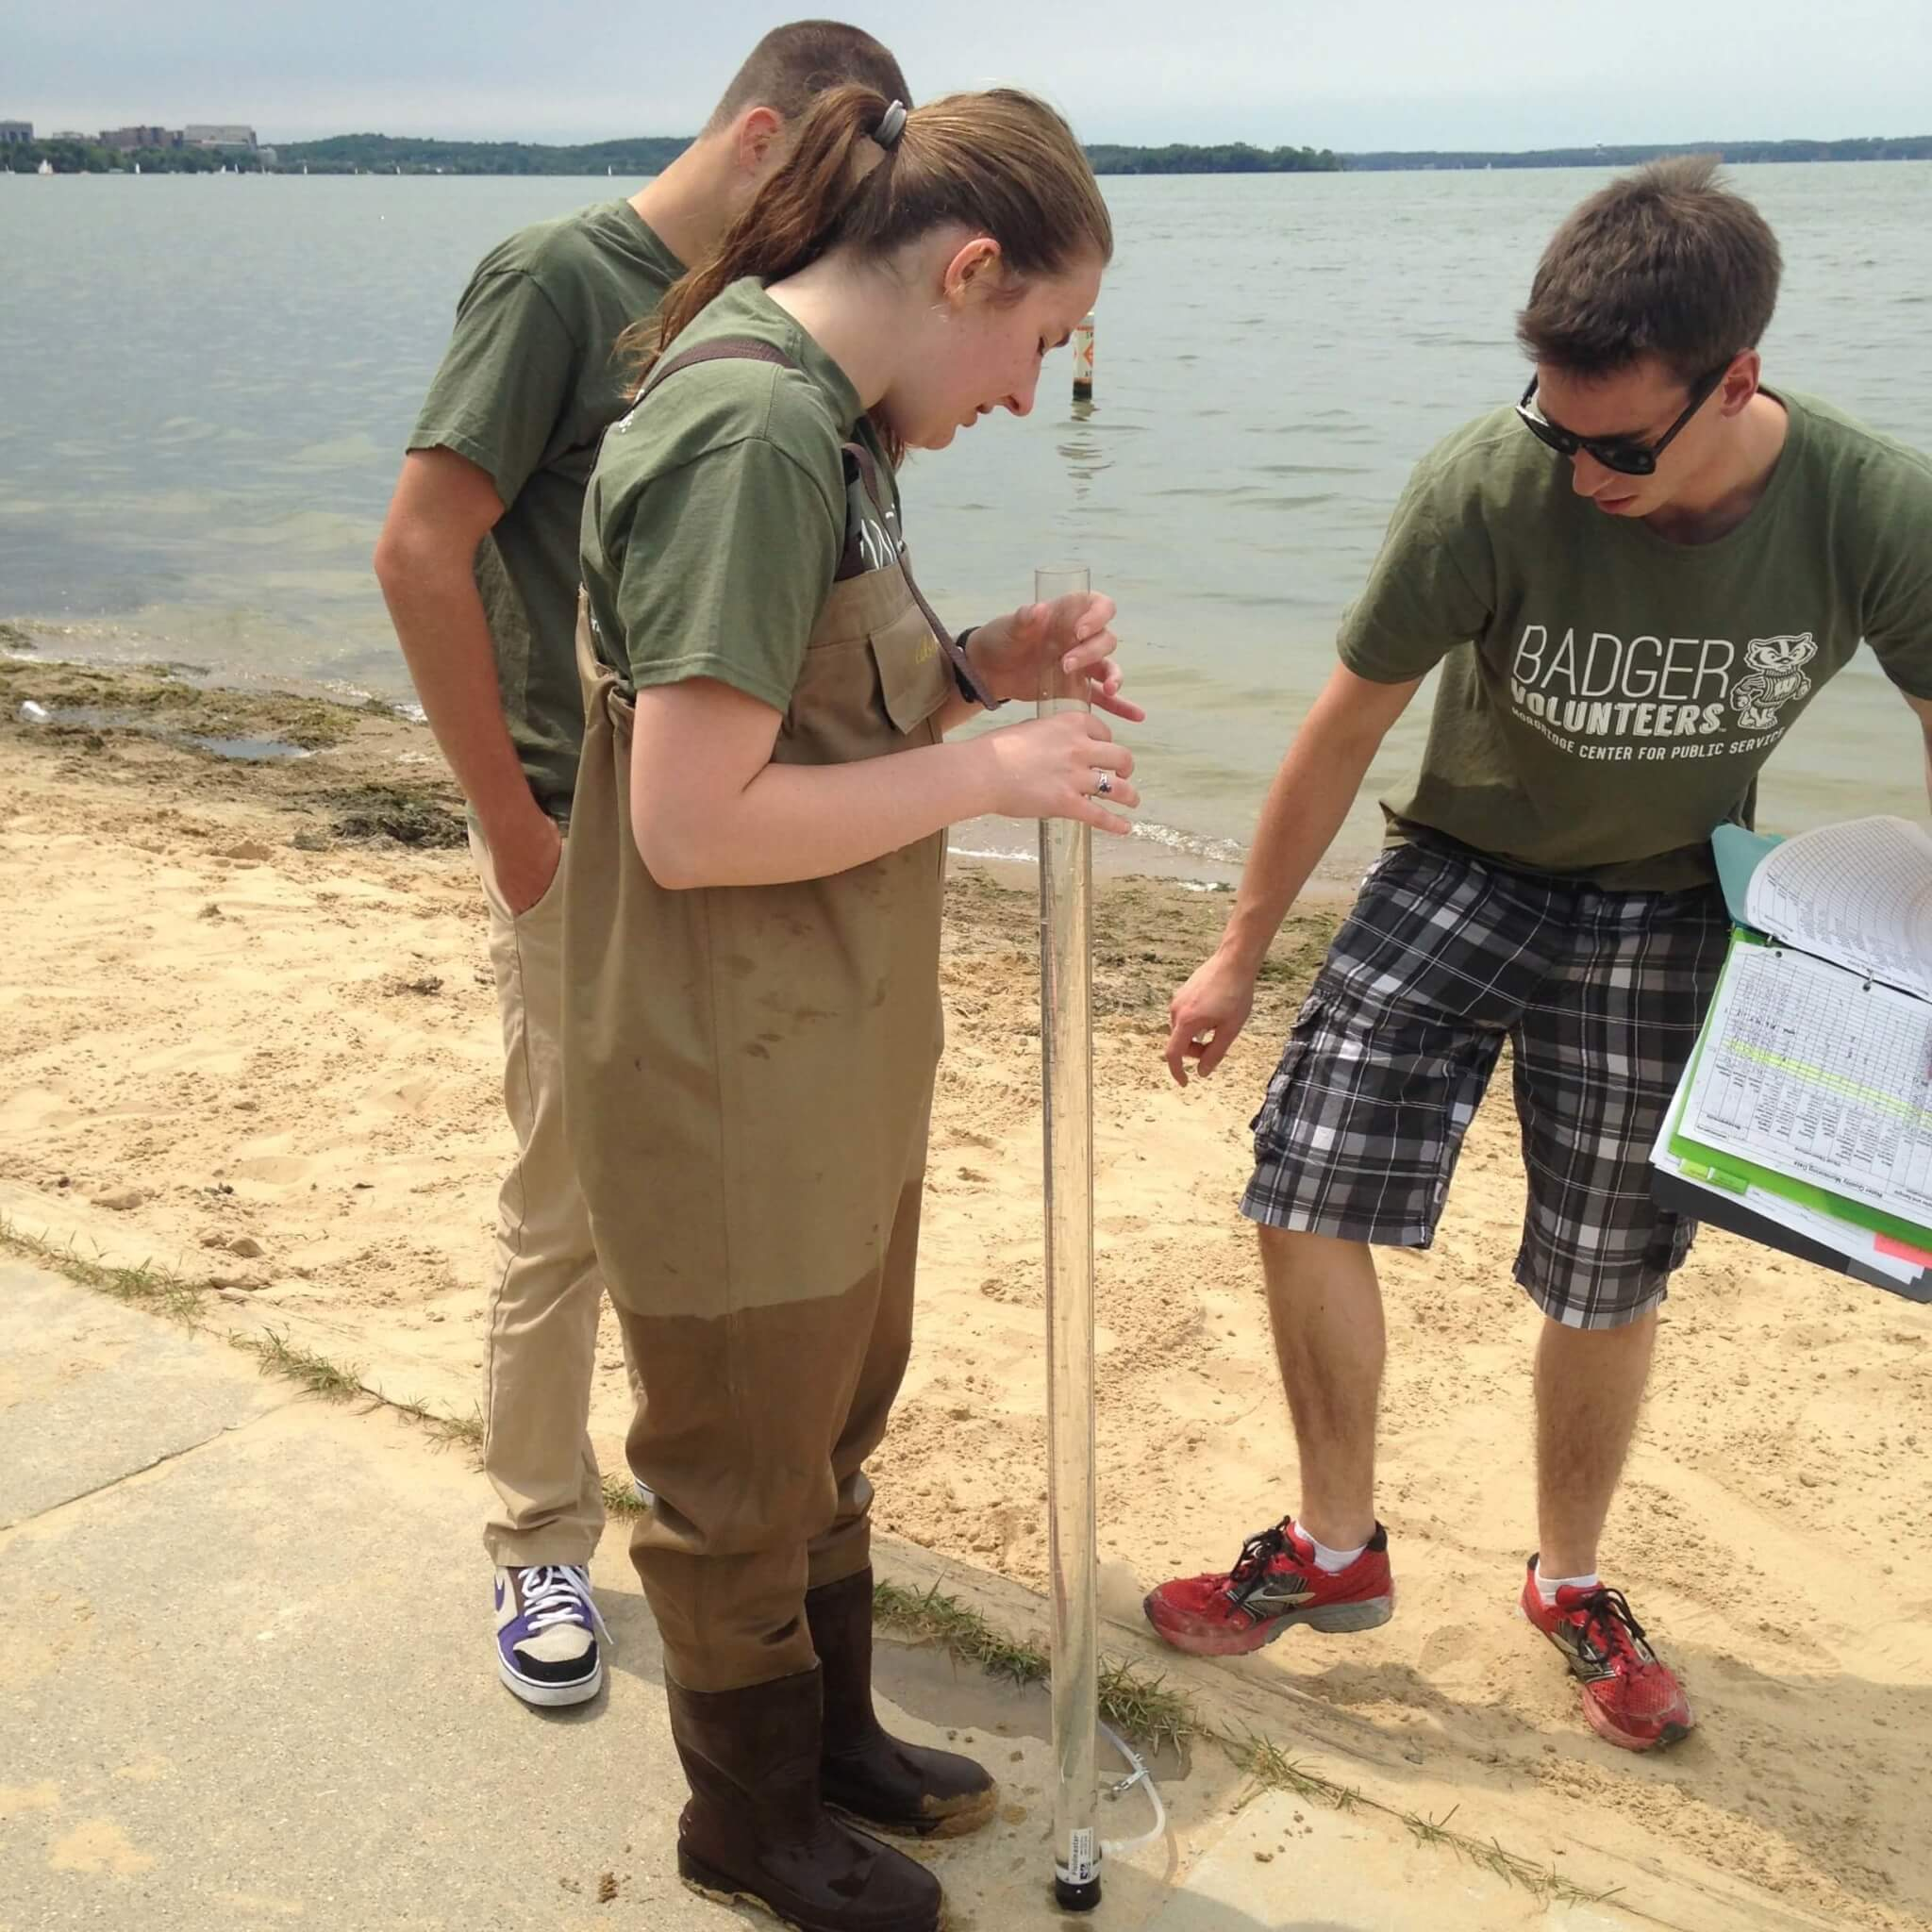 Badger Volunteers - Water Quality Monitoring